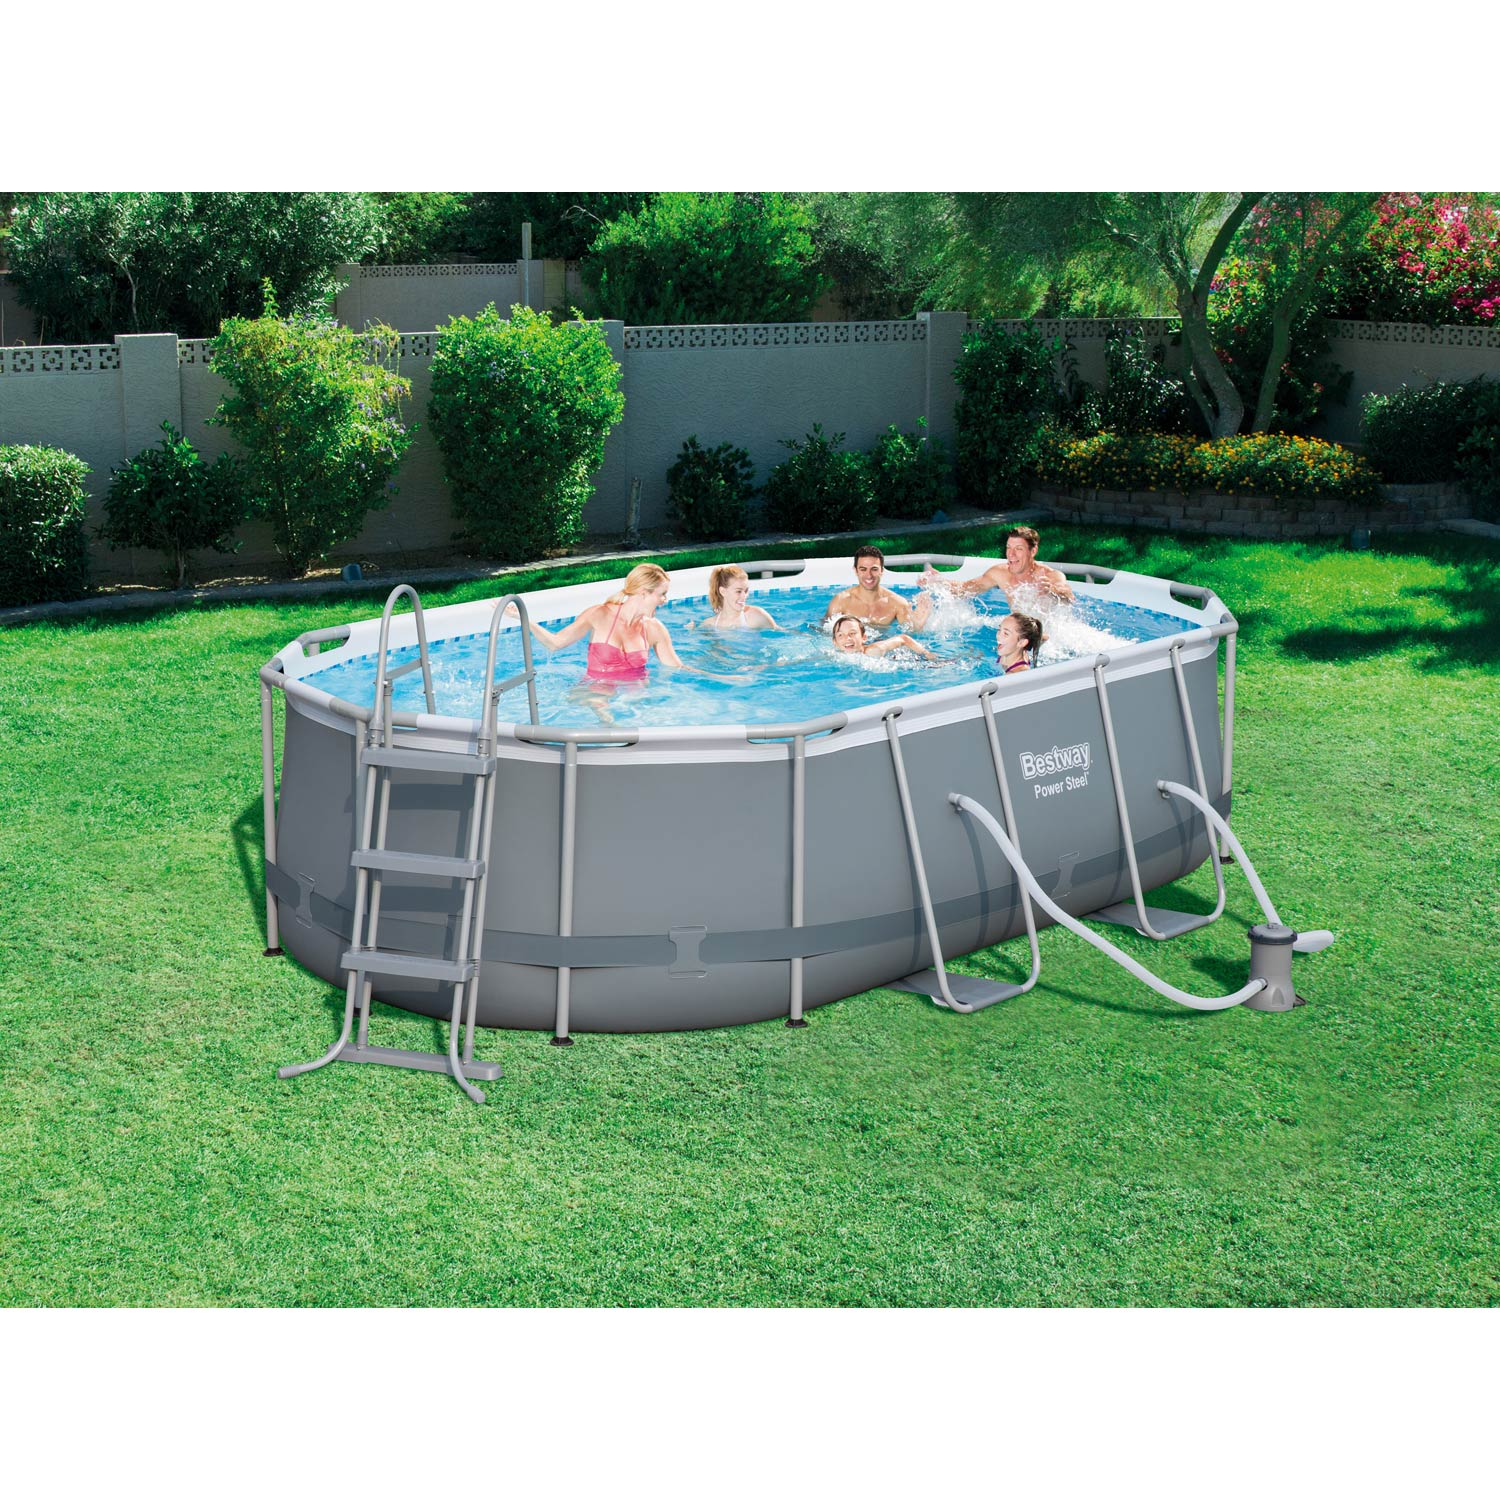 Piscine hors sol autoportante tubulaire bestway l x for Piscine hors sol imposable